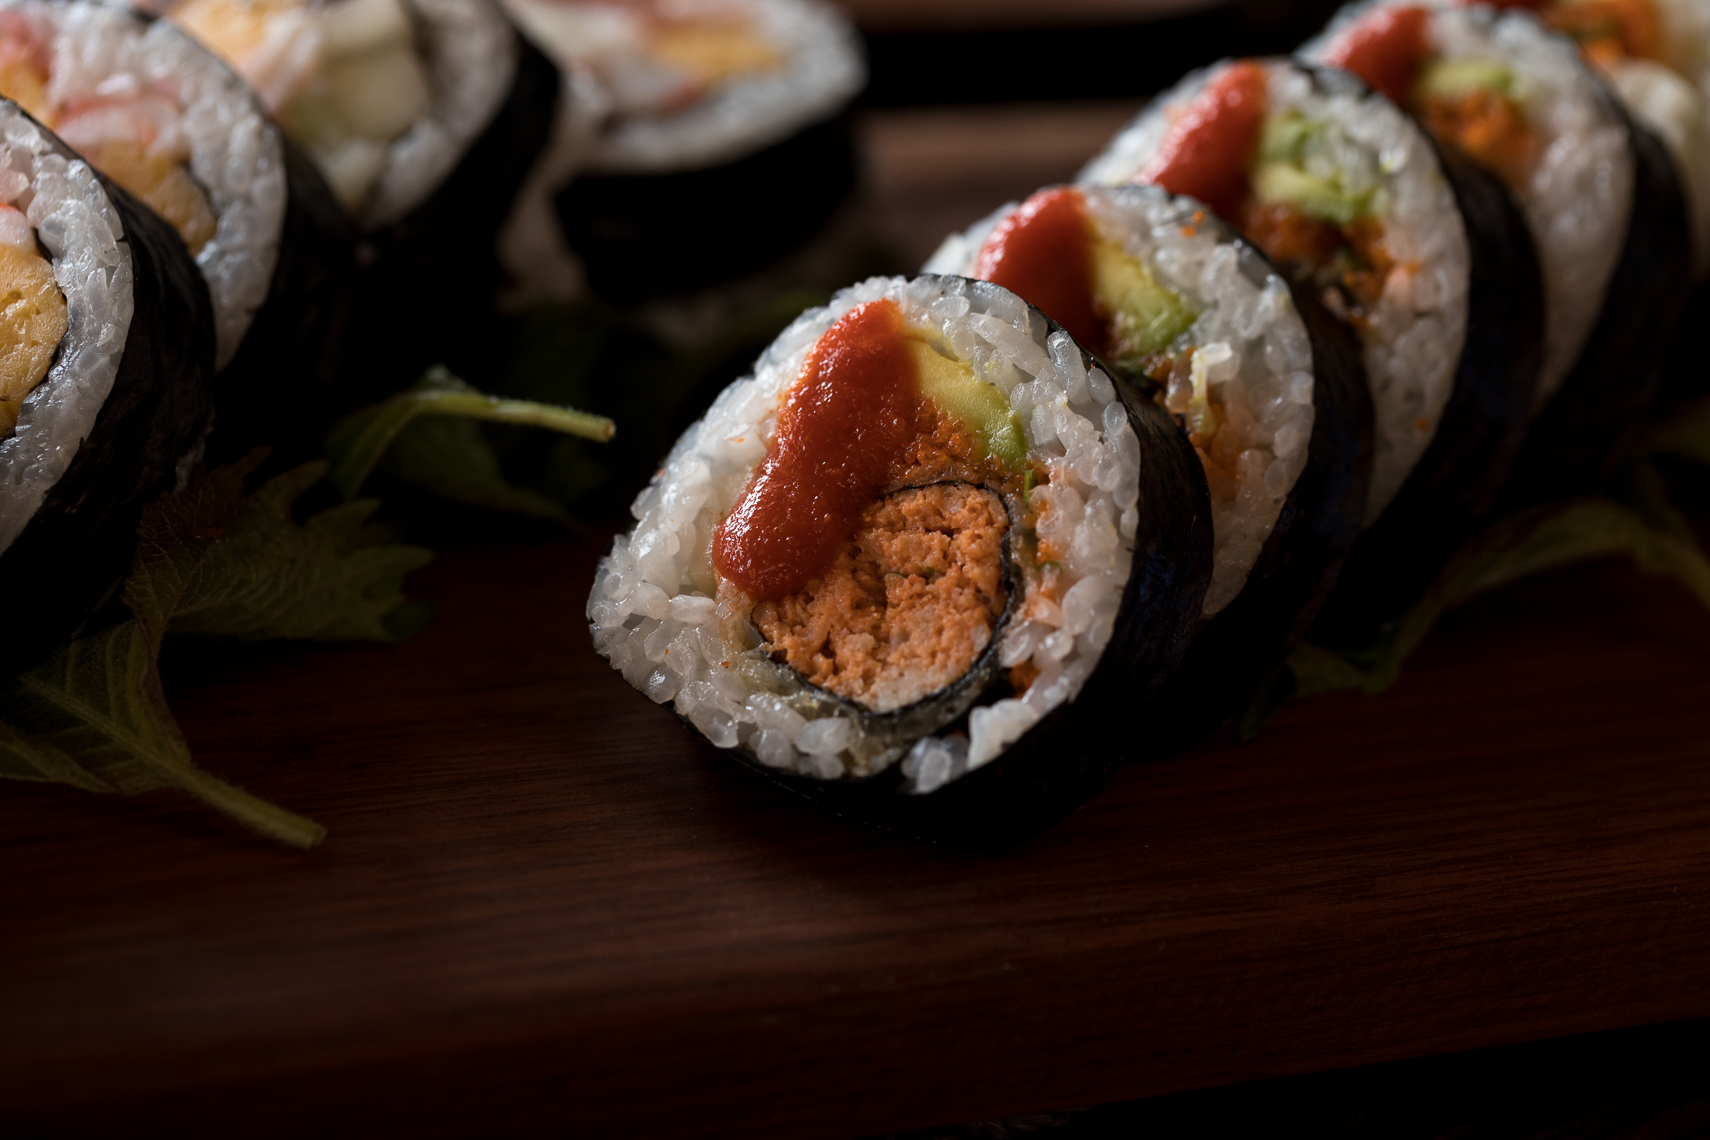 godai-sushi-jason-risner-photography-9851